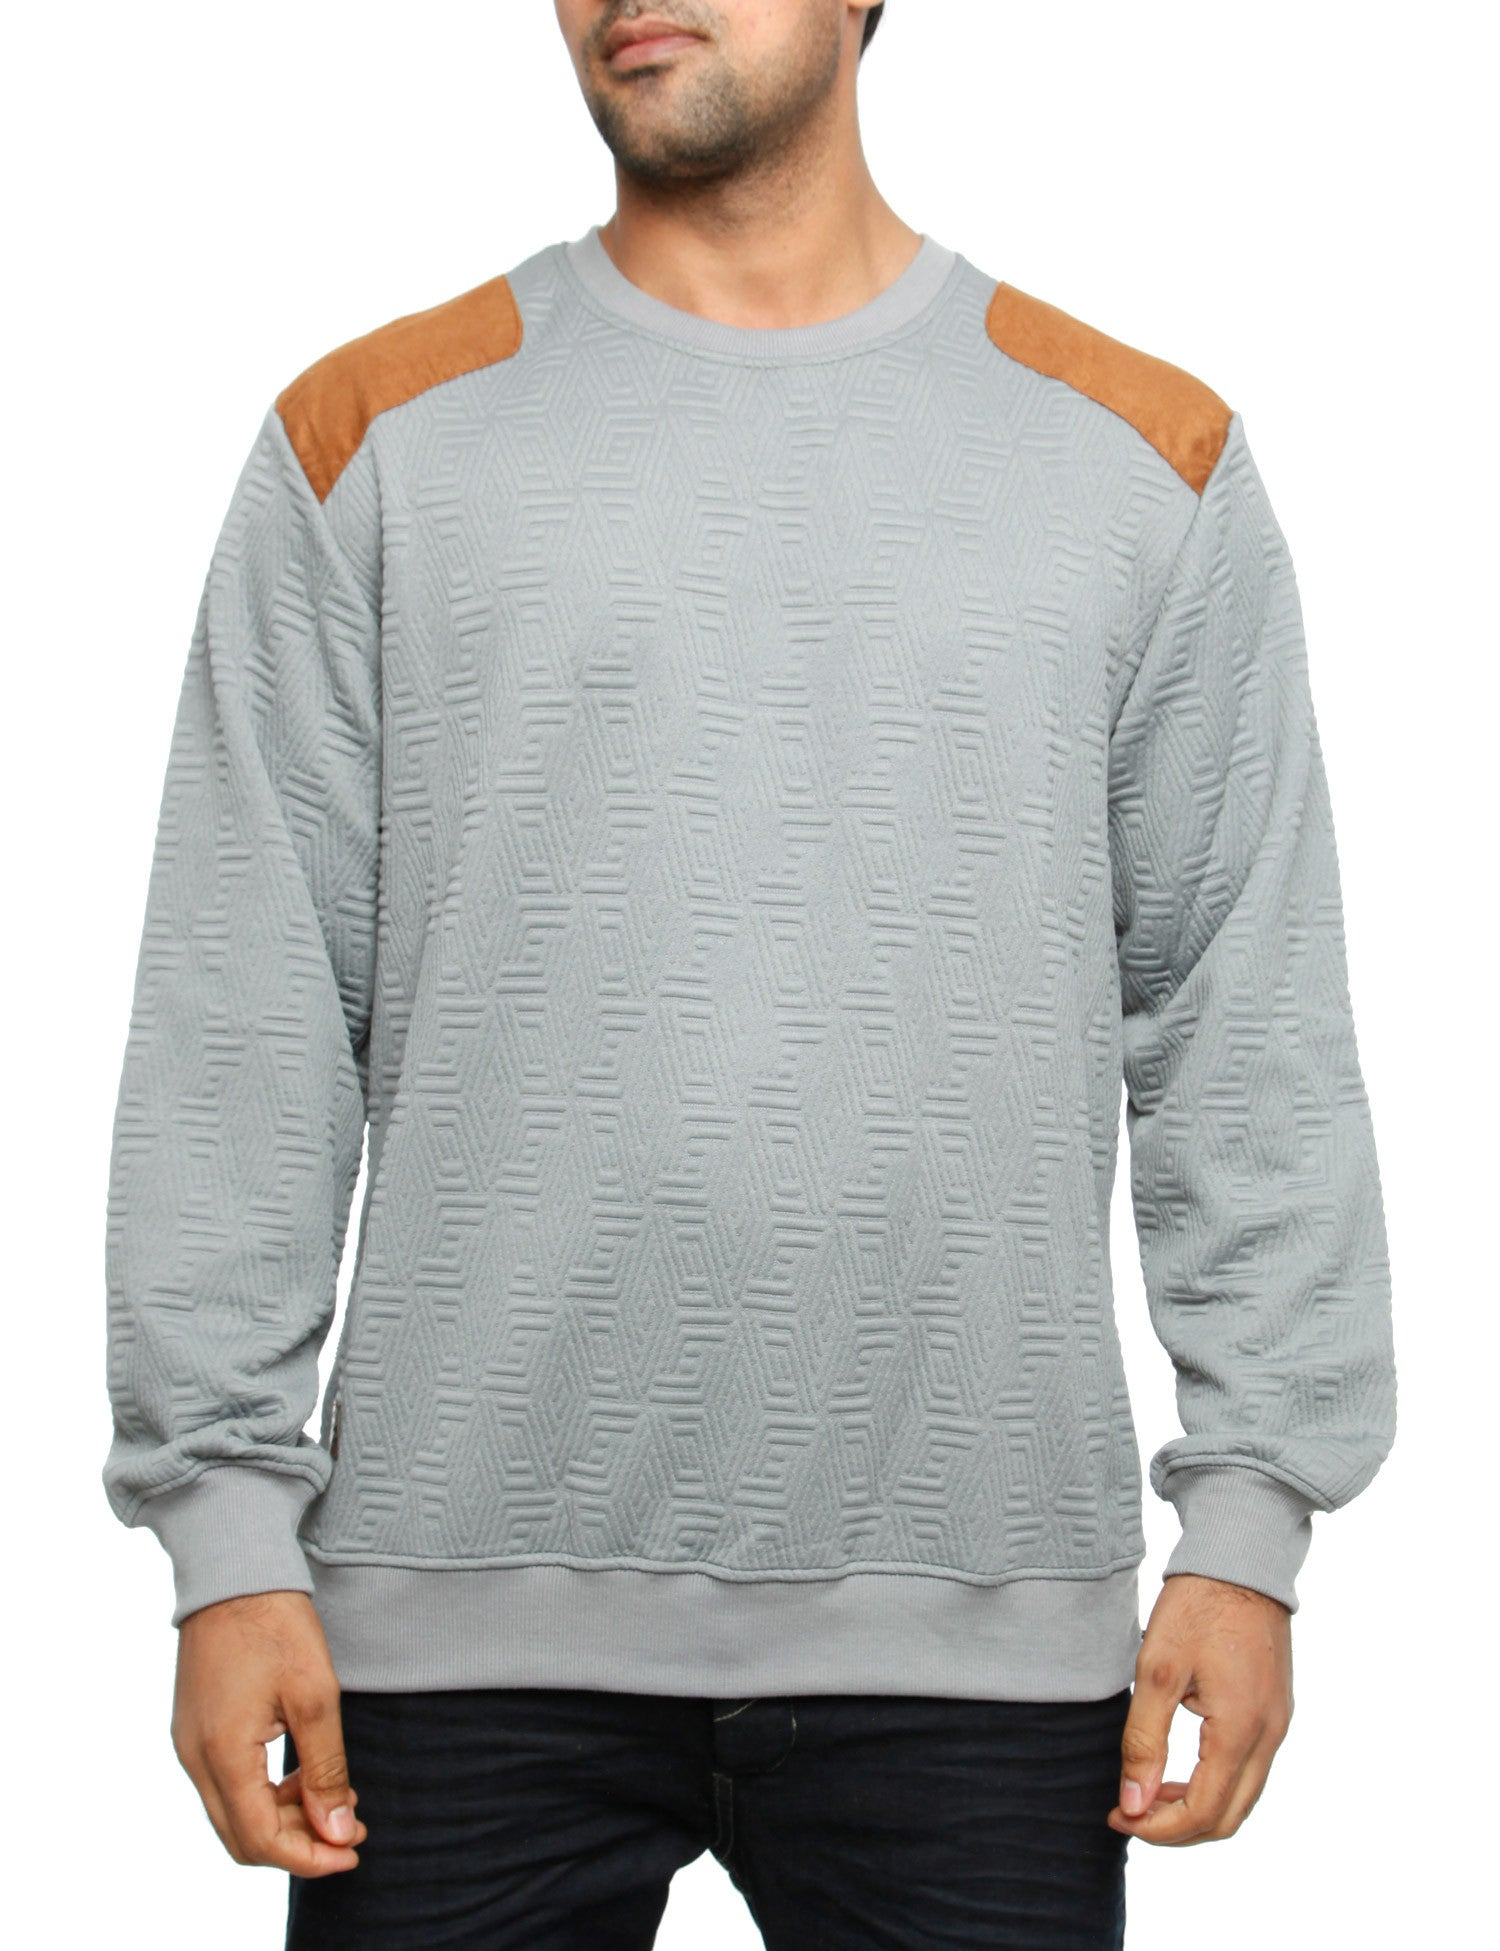 Imperious ?Quilted? Sweatshirt CS542 Grey